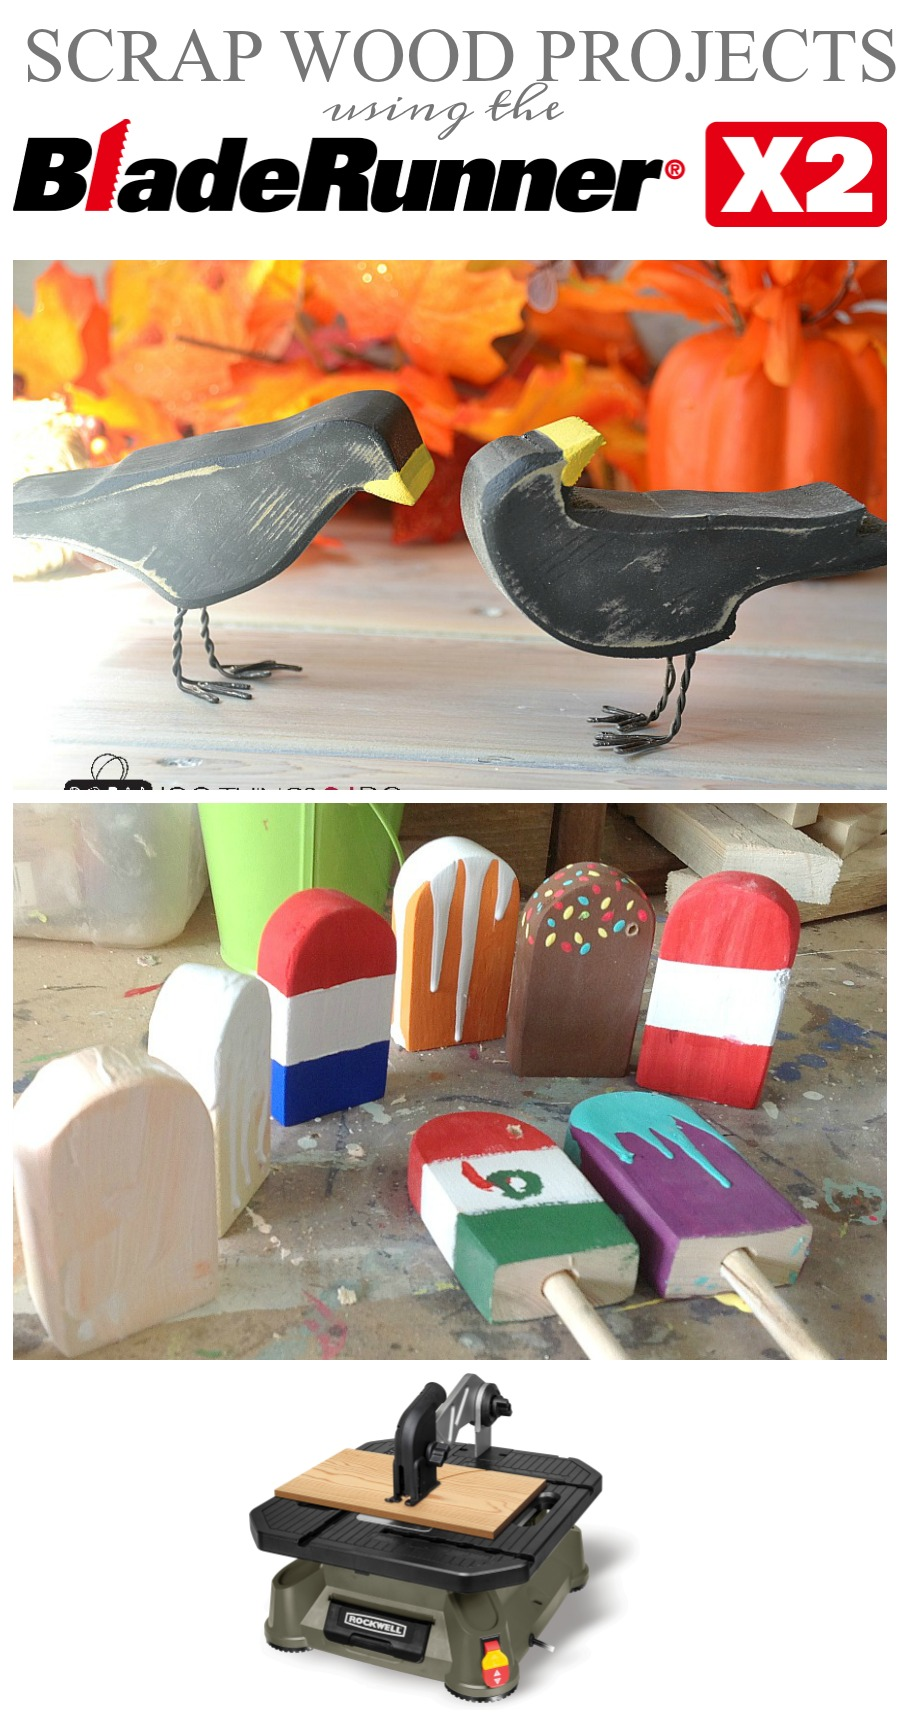 Scrap wood crows, Halloween decor, Hallowe'en crows, scrap wood crows, Rockwell Bladerunner X2